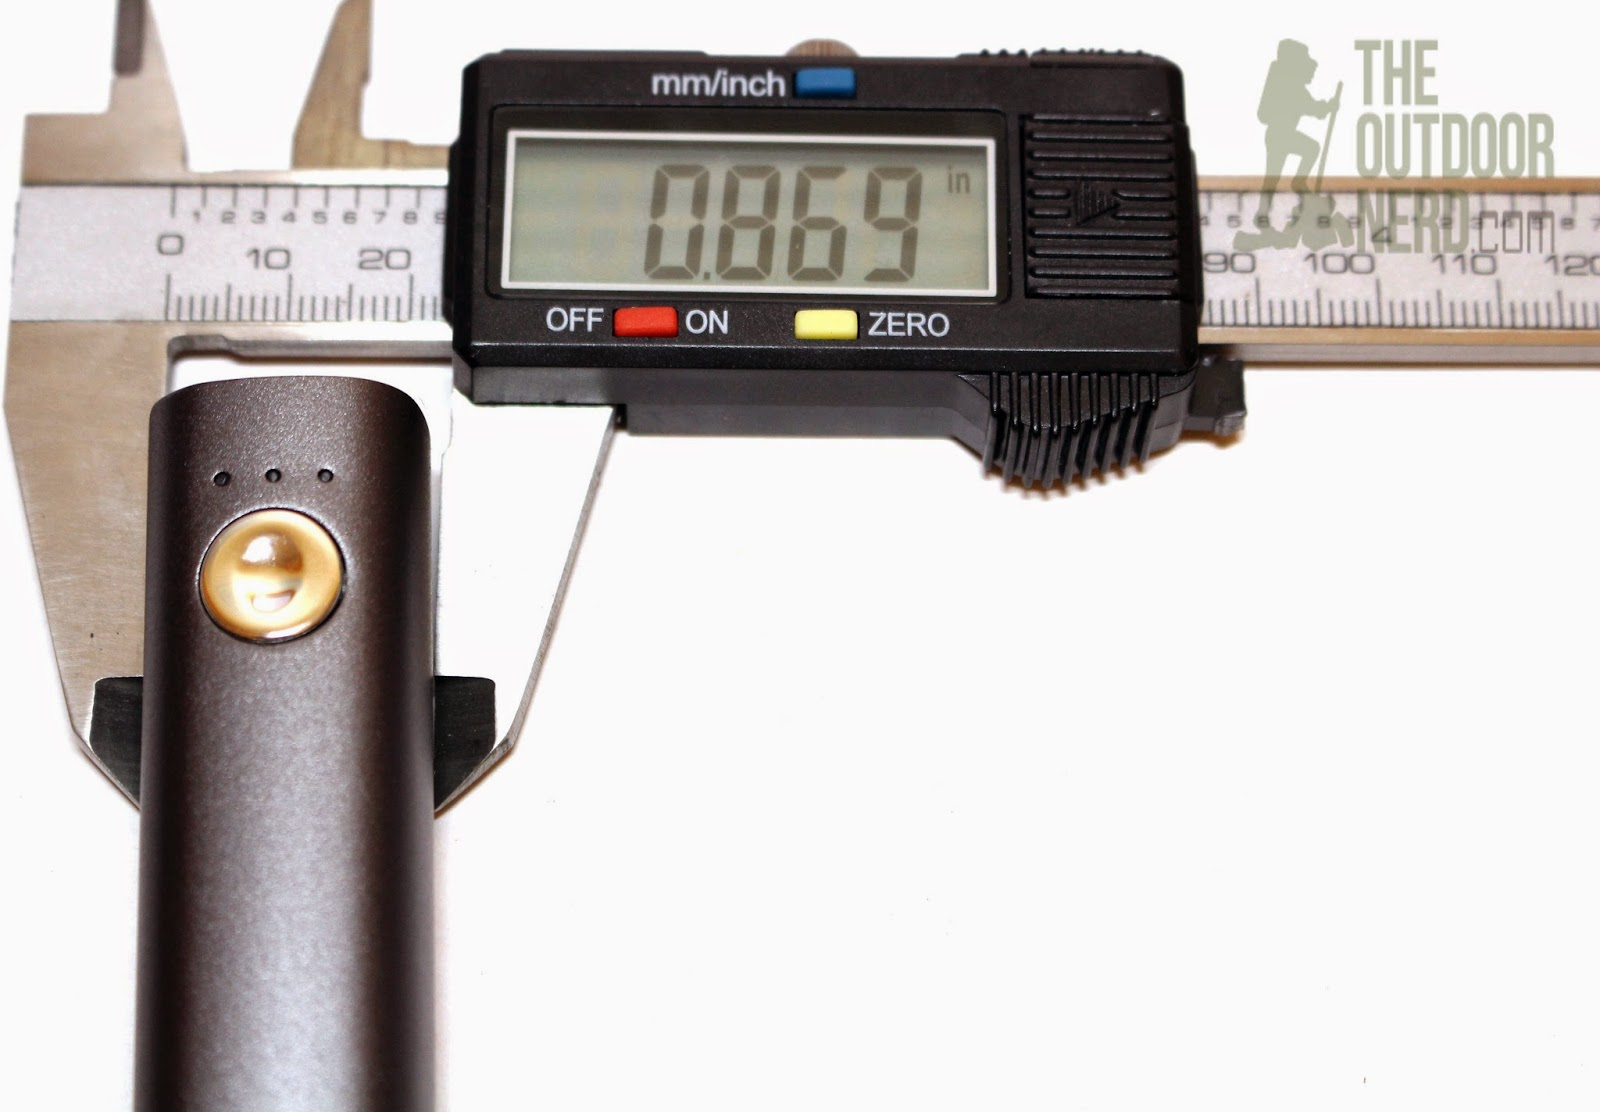 Intocircuit 3000 mAh USB Power Bank: Caliper Measurement